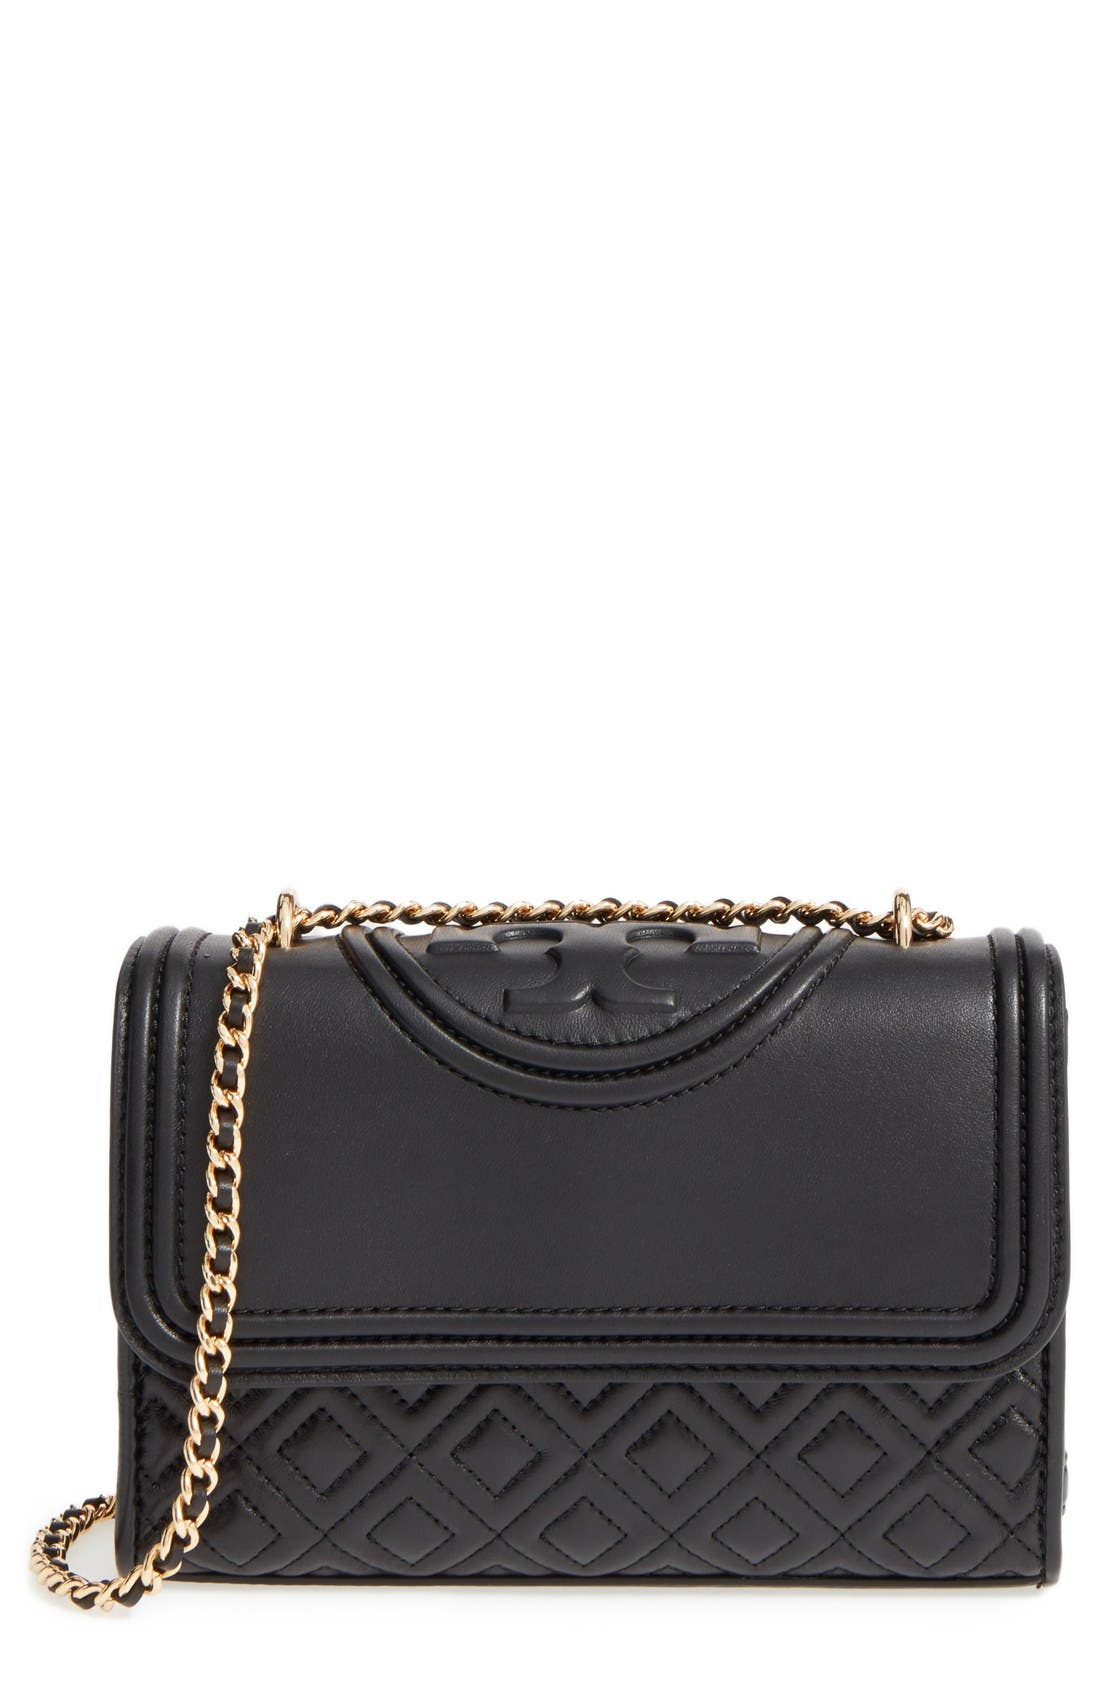 'Small Fleming' Quilted Leather Shoulder Bag,                             Main thumbnail 1, color,